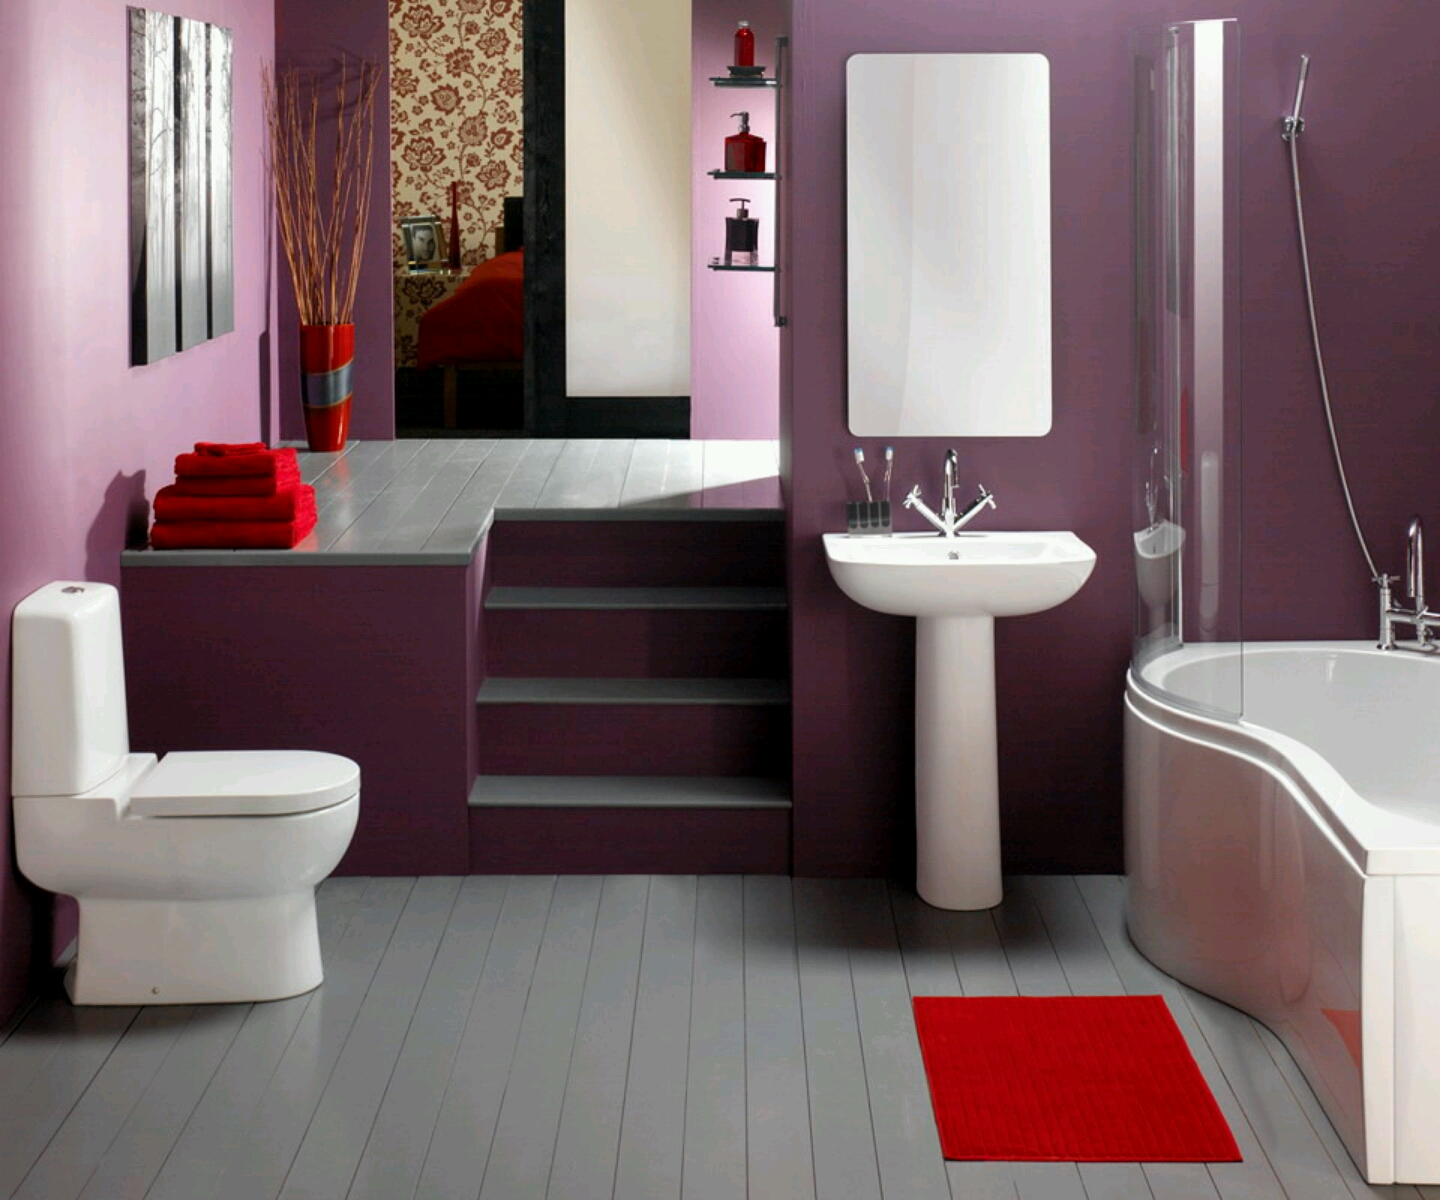 New home designs latest luxury modern bathrooms designs Bathroom color ideas